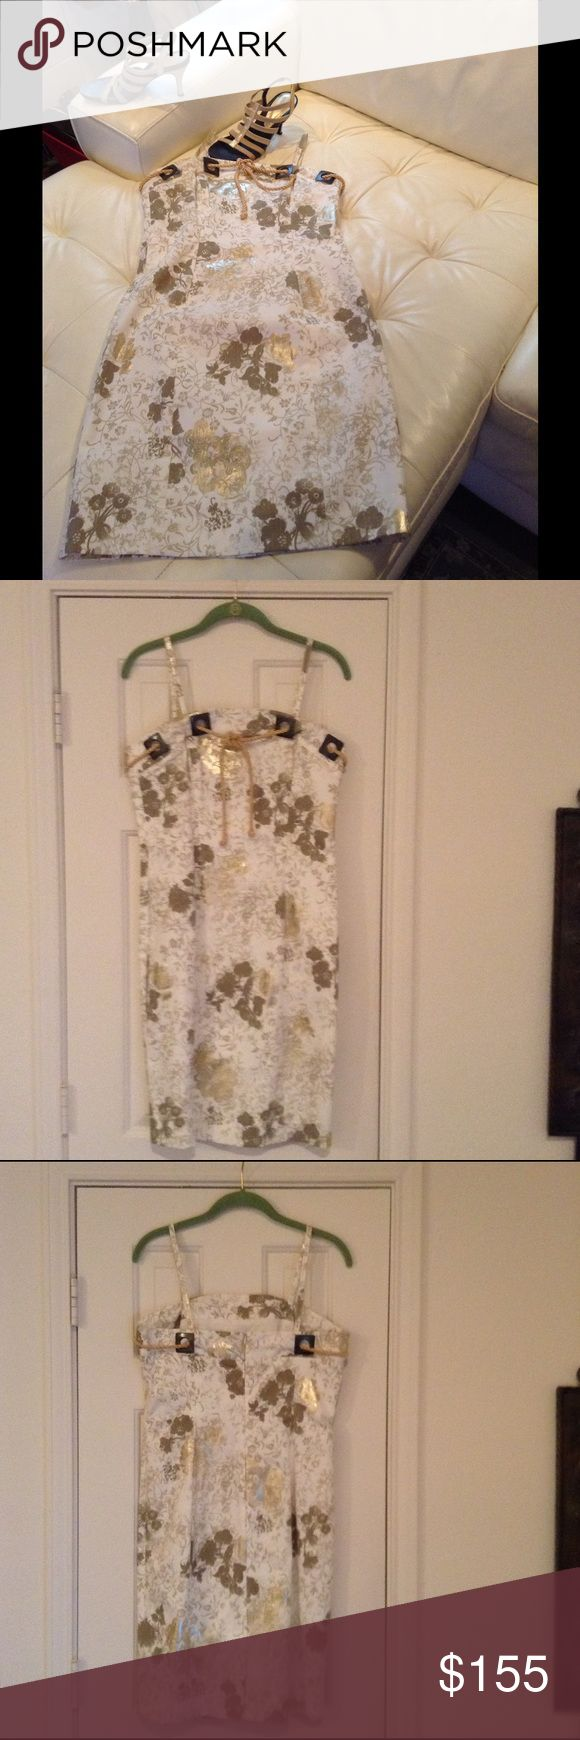 DONNA DEGNAN Summer Dress This dress says WOW !!! White w/Gold foil like high gloss flowers . Form fitting can be worn w/ spaghetti straps or they can be removed has stays in it for security and great look either way . Metal grommets around neckline w/ shinny gold rope ,ties in front .hidden zipper & is fully lined .Shown w/Gold Donald J Pliner for sale in a Separate listing. Worn once for just a few hours . DONNA DEGNAN Dresses Strapless